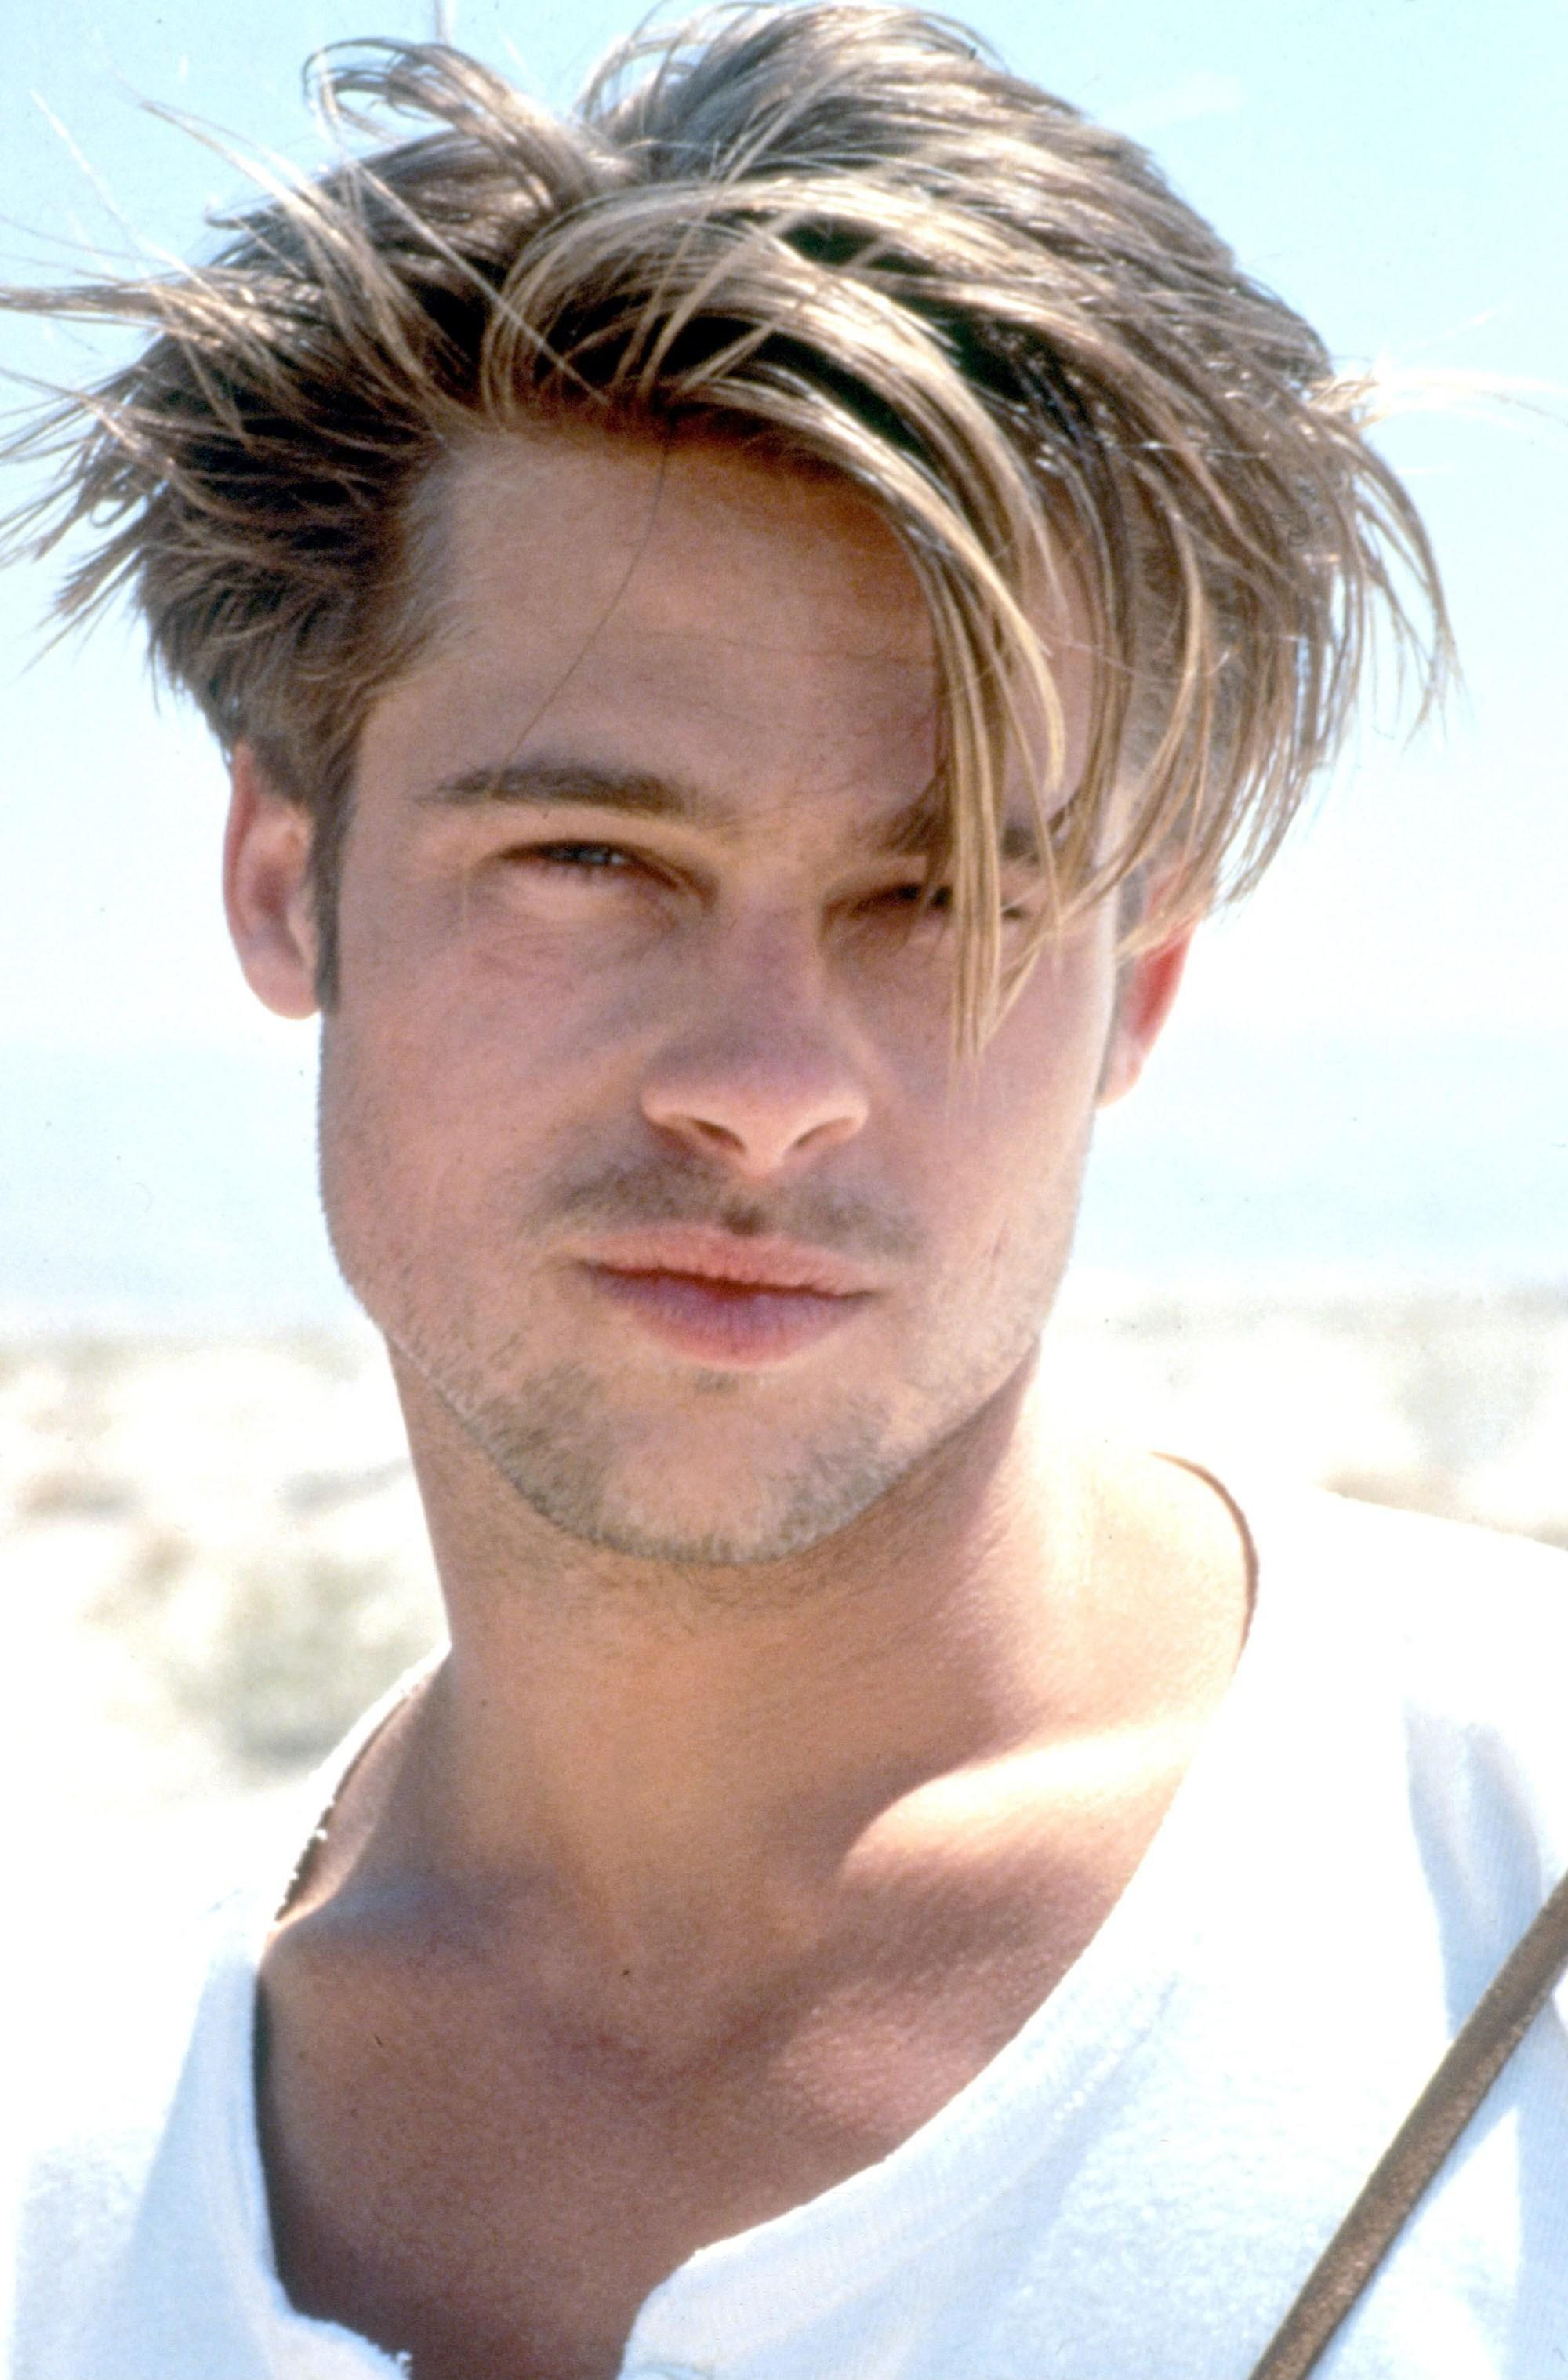 Brad Pitt Photo 295 Of 965 Pics Wallpaper Photo 144622